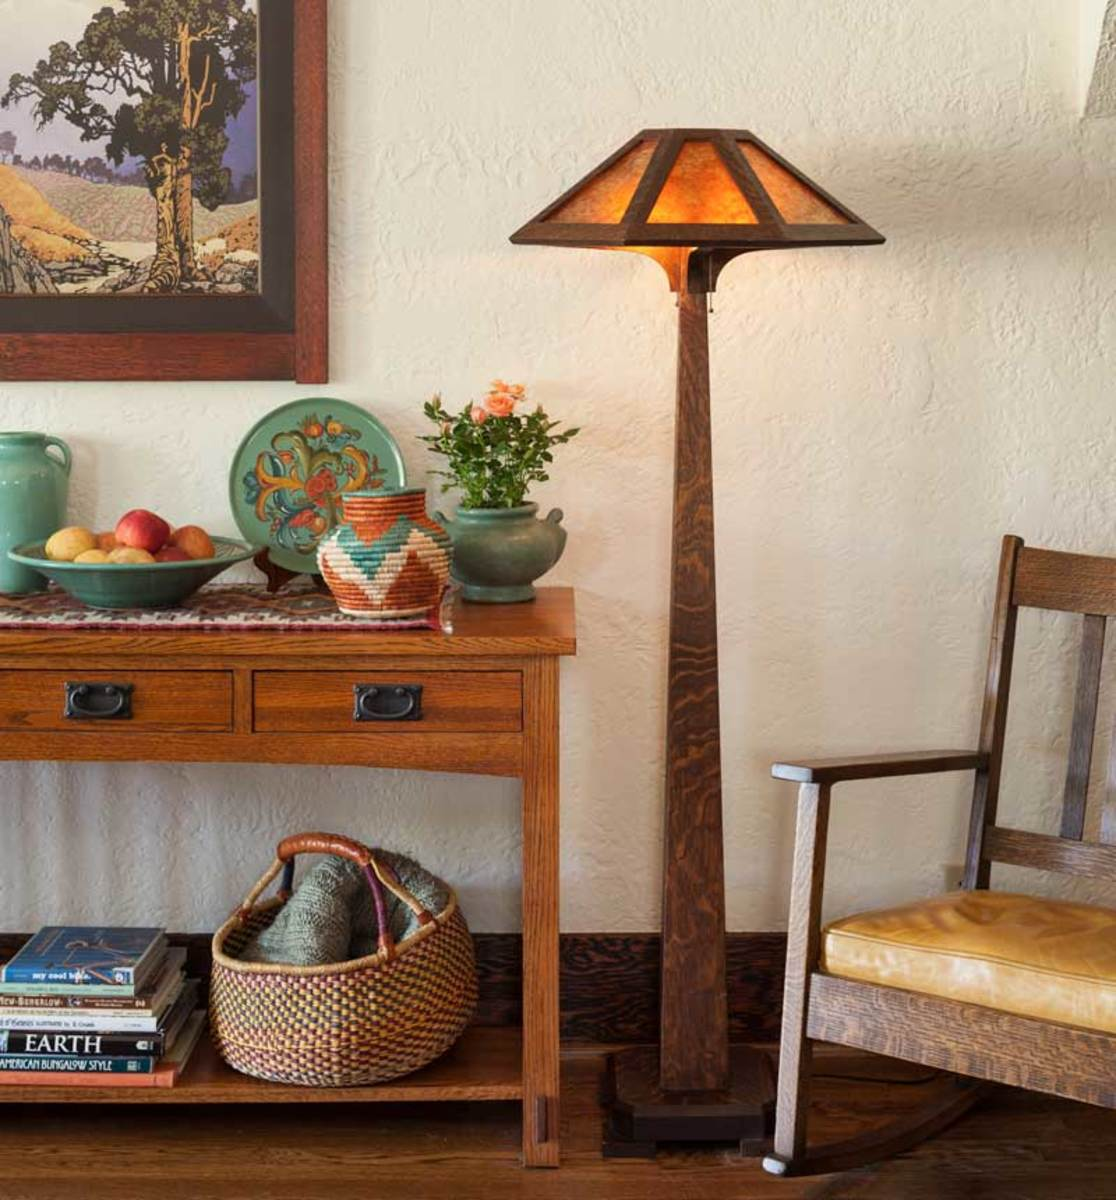 'Saugatuck' Mission-style floor lamp from Ragsdale